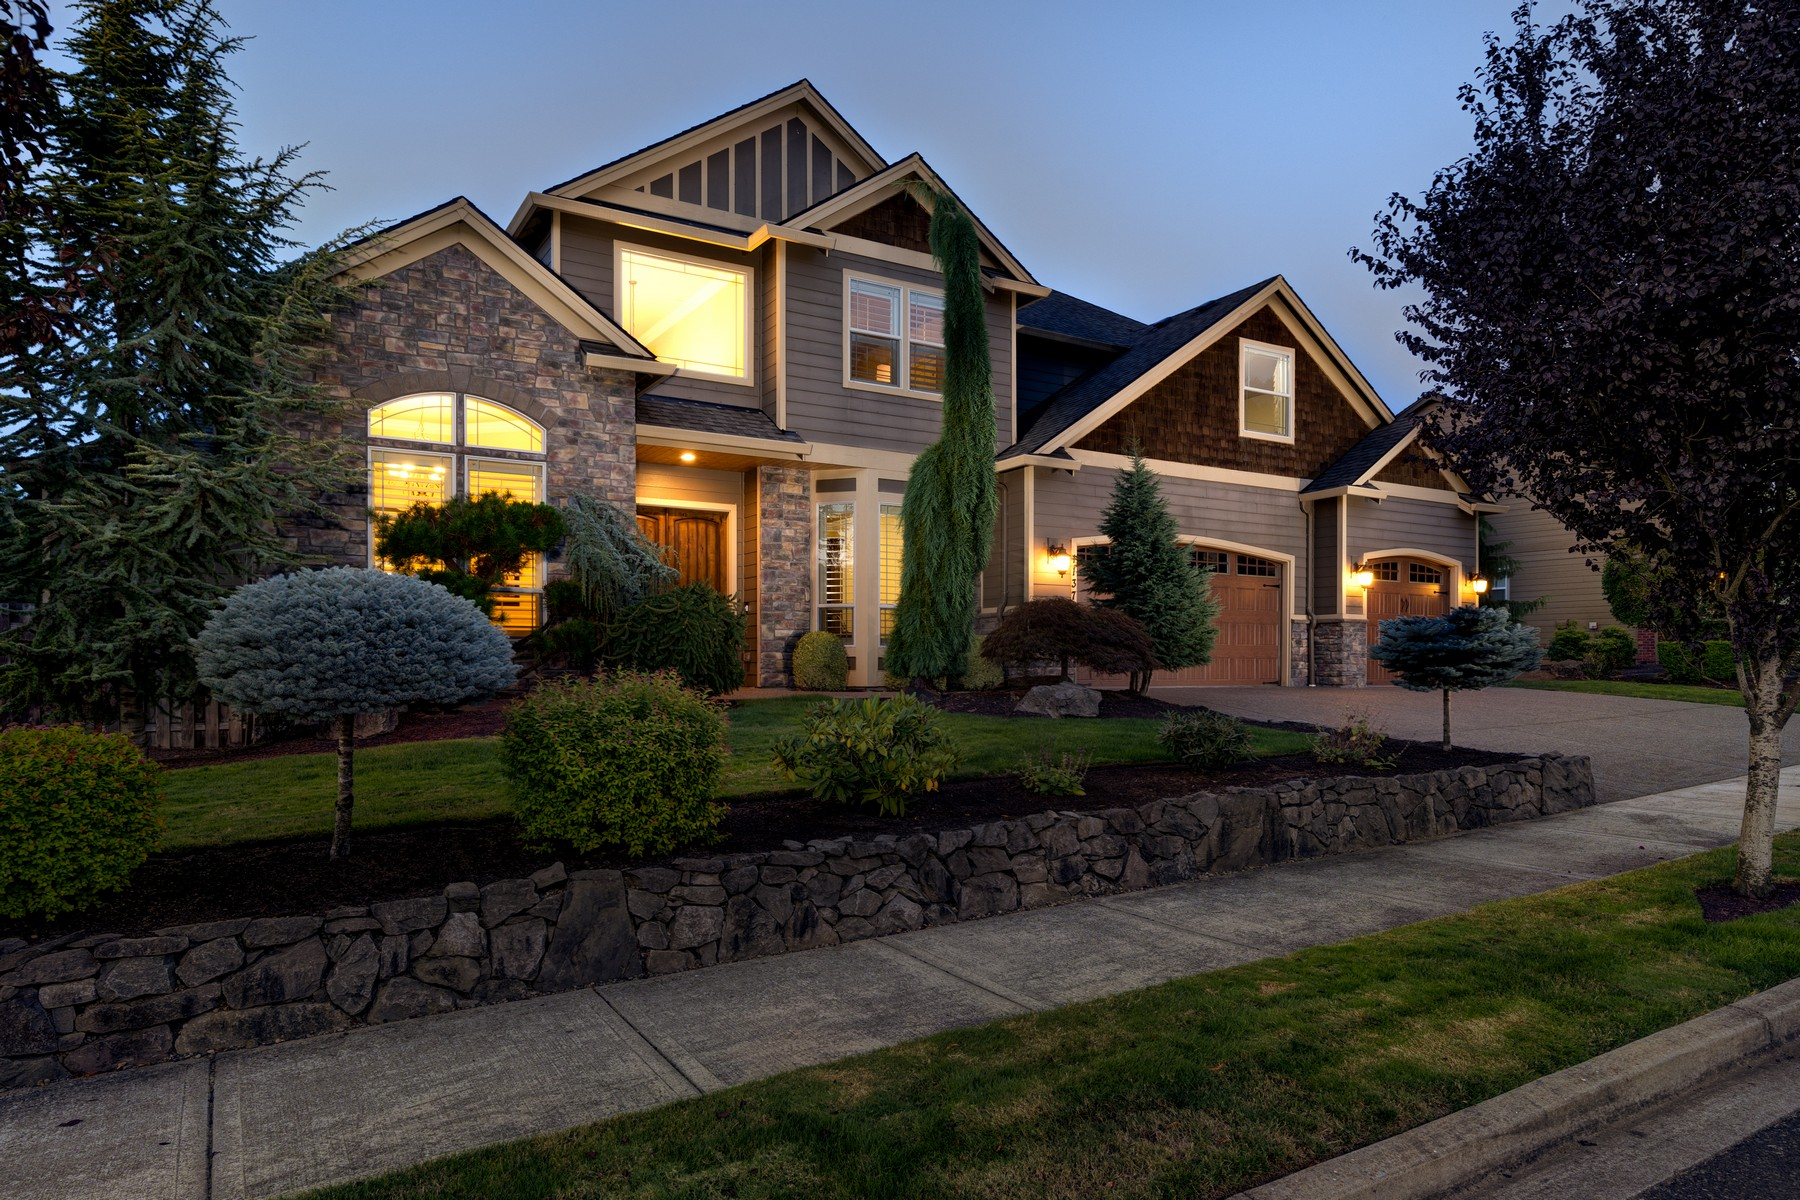 Single Family Homes for Sale at Gorgeous Executive Home in Camas! 1137 NW 43RD AVE Camas, Washington 98607 United States